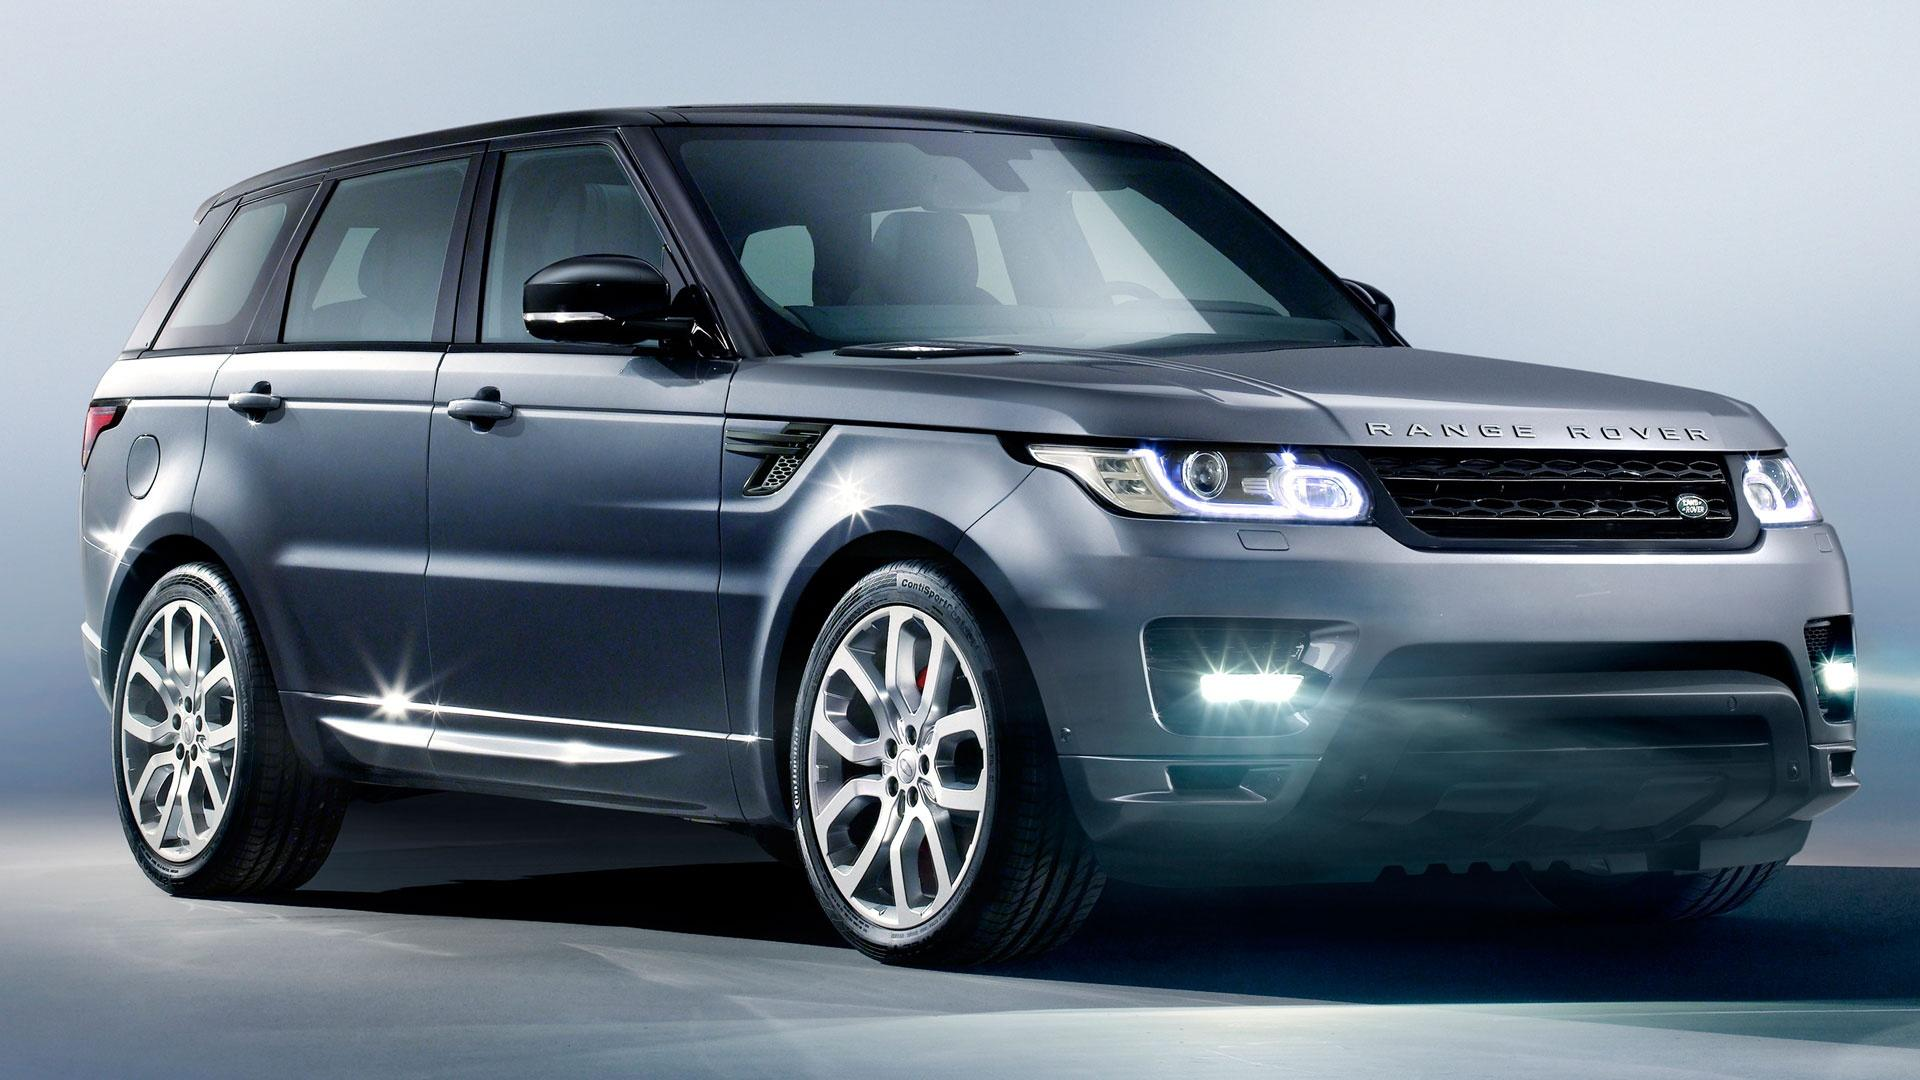 2014 Land Rover Range Rover Sport & 2014 Cadillac CTS